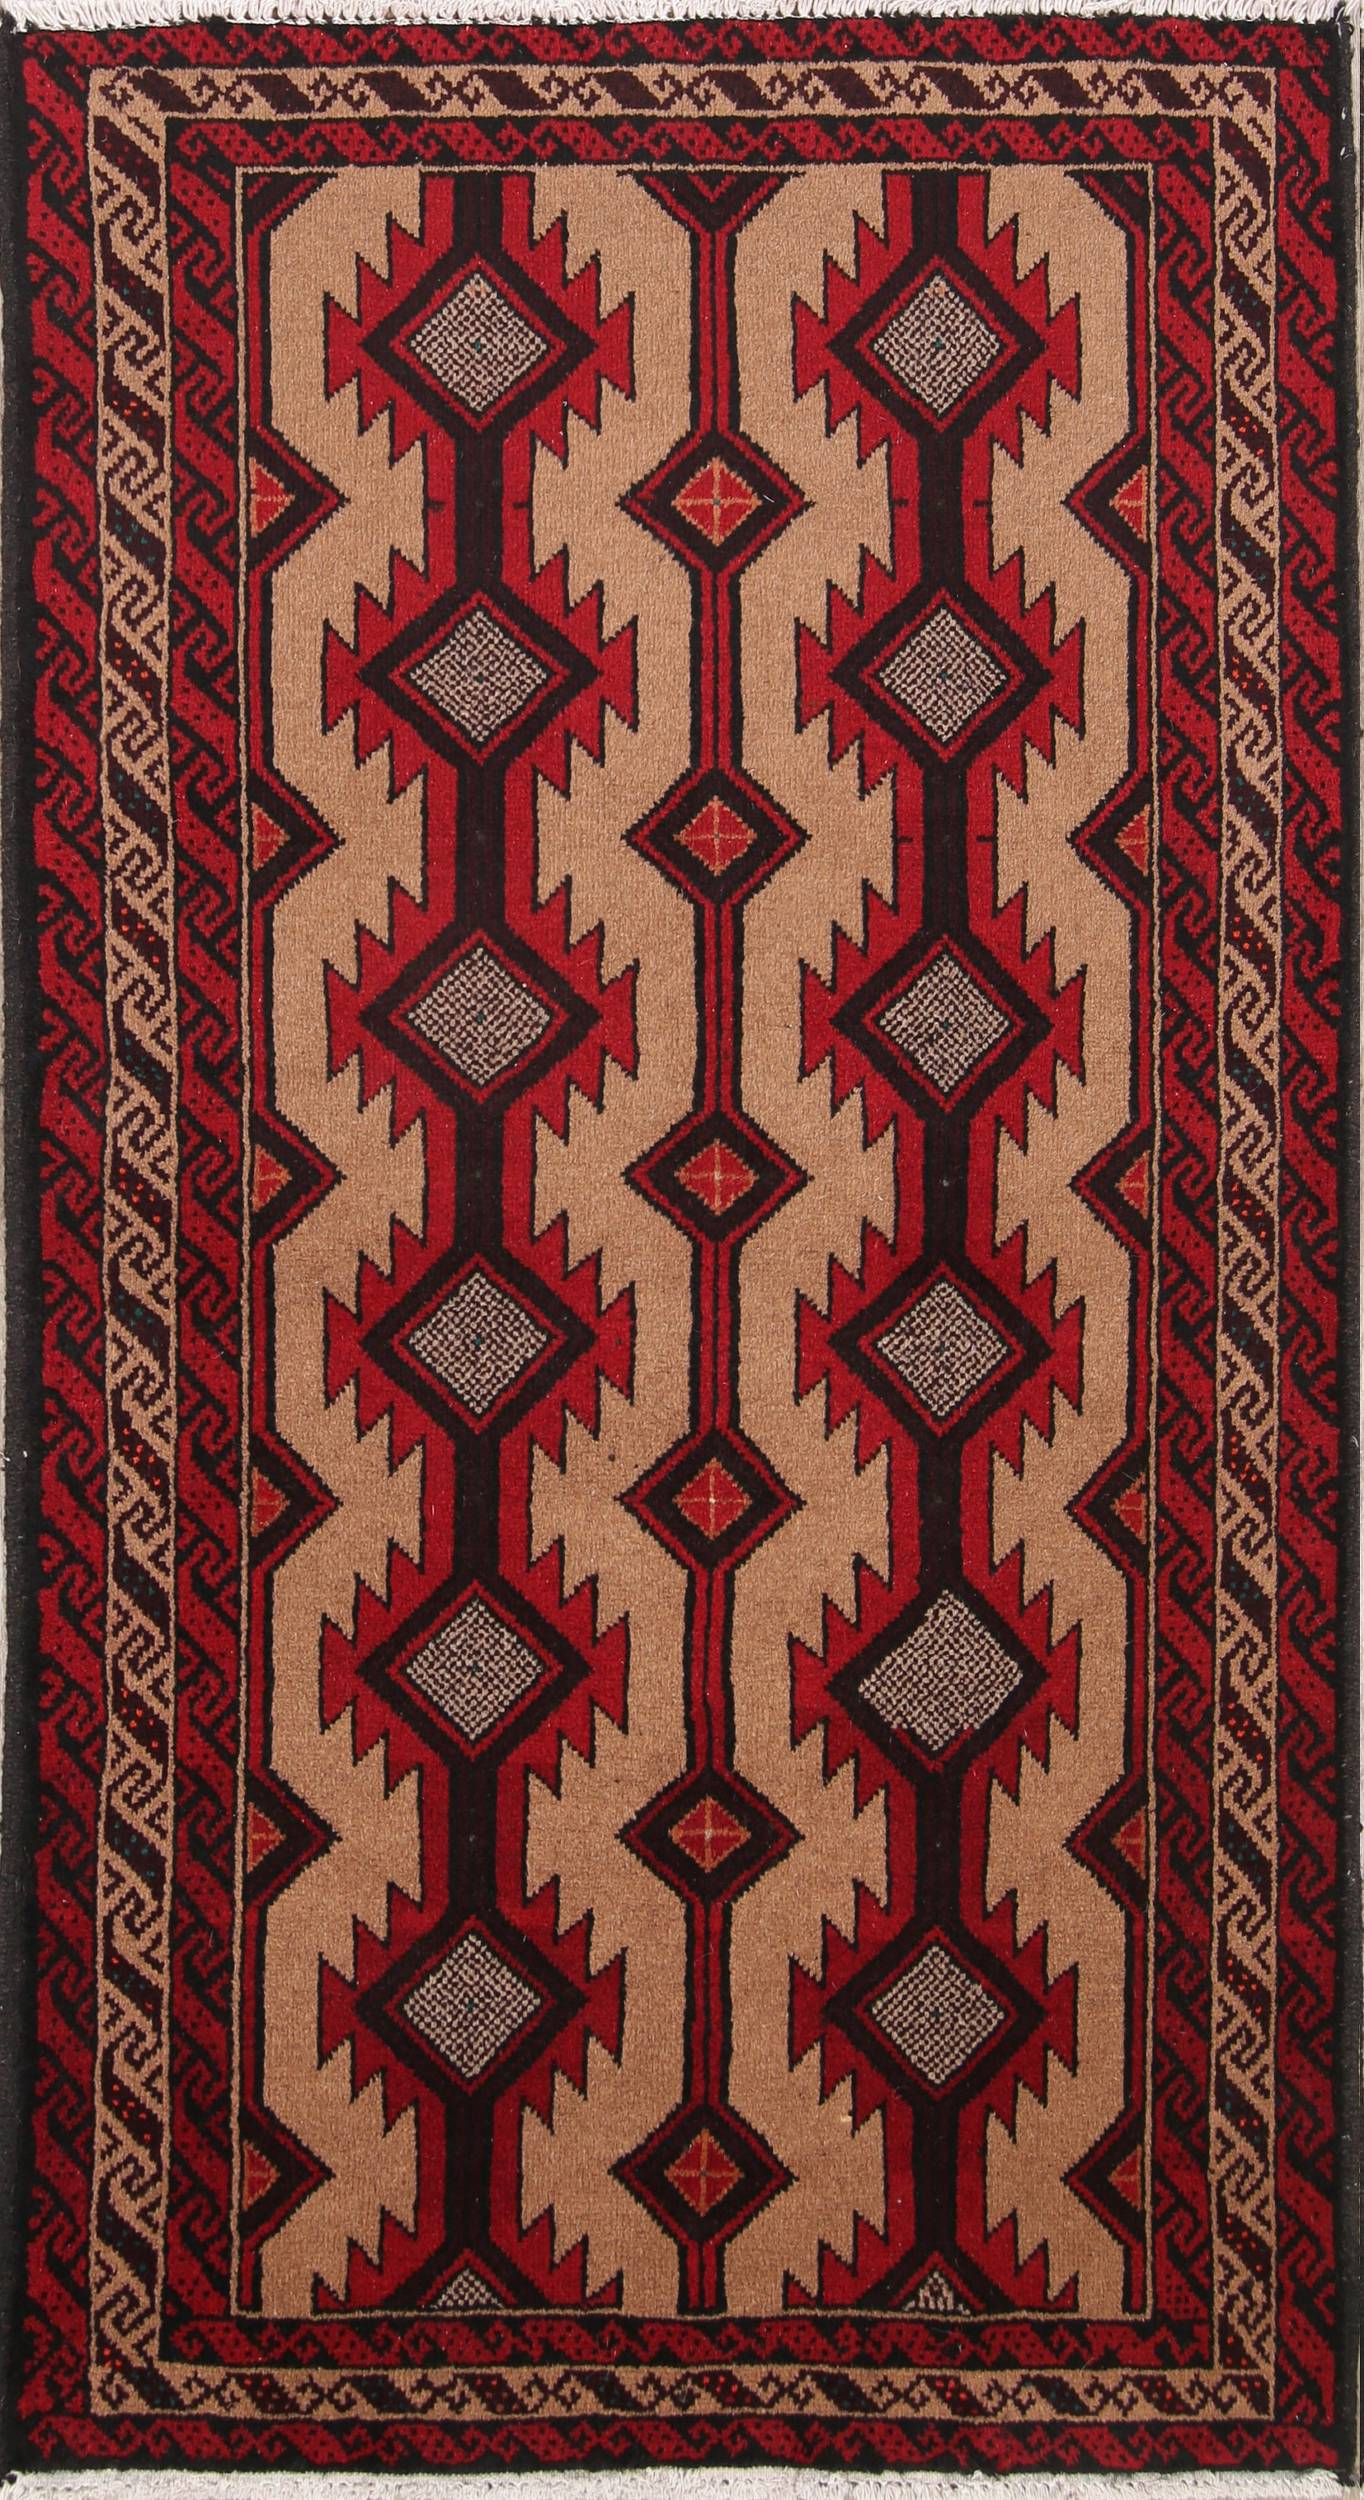 All-Over Geometric 3x6 Balouch Persian Rug Runner